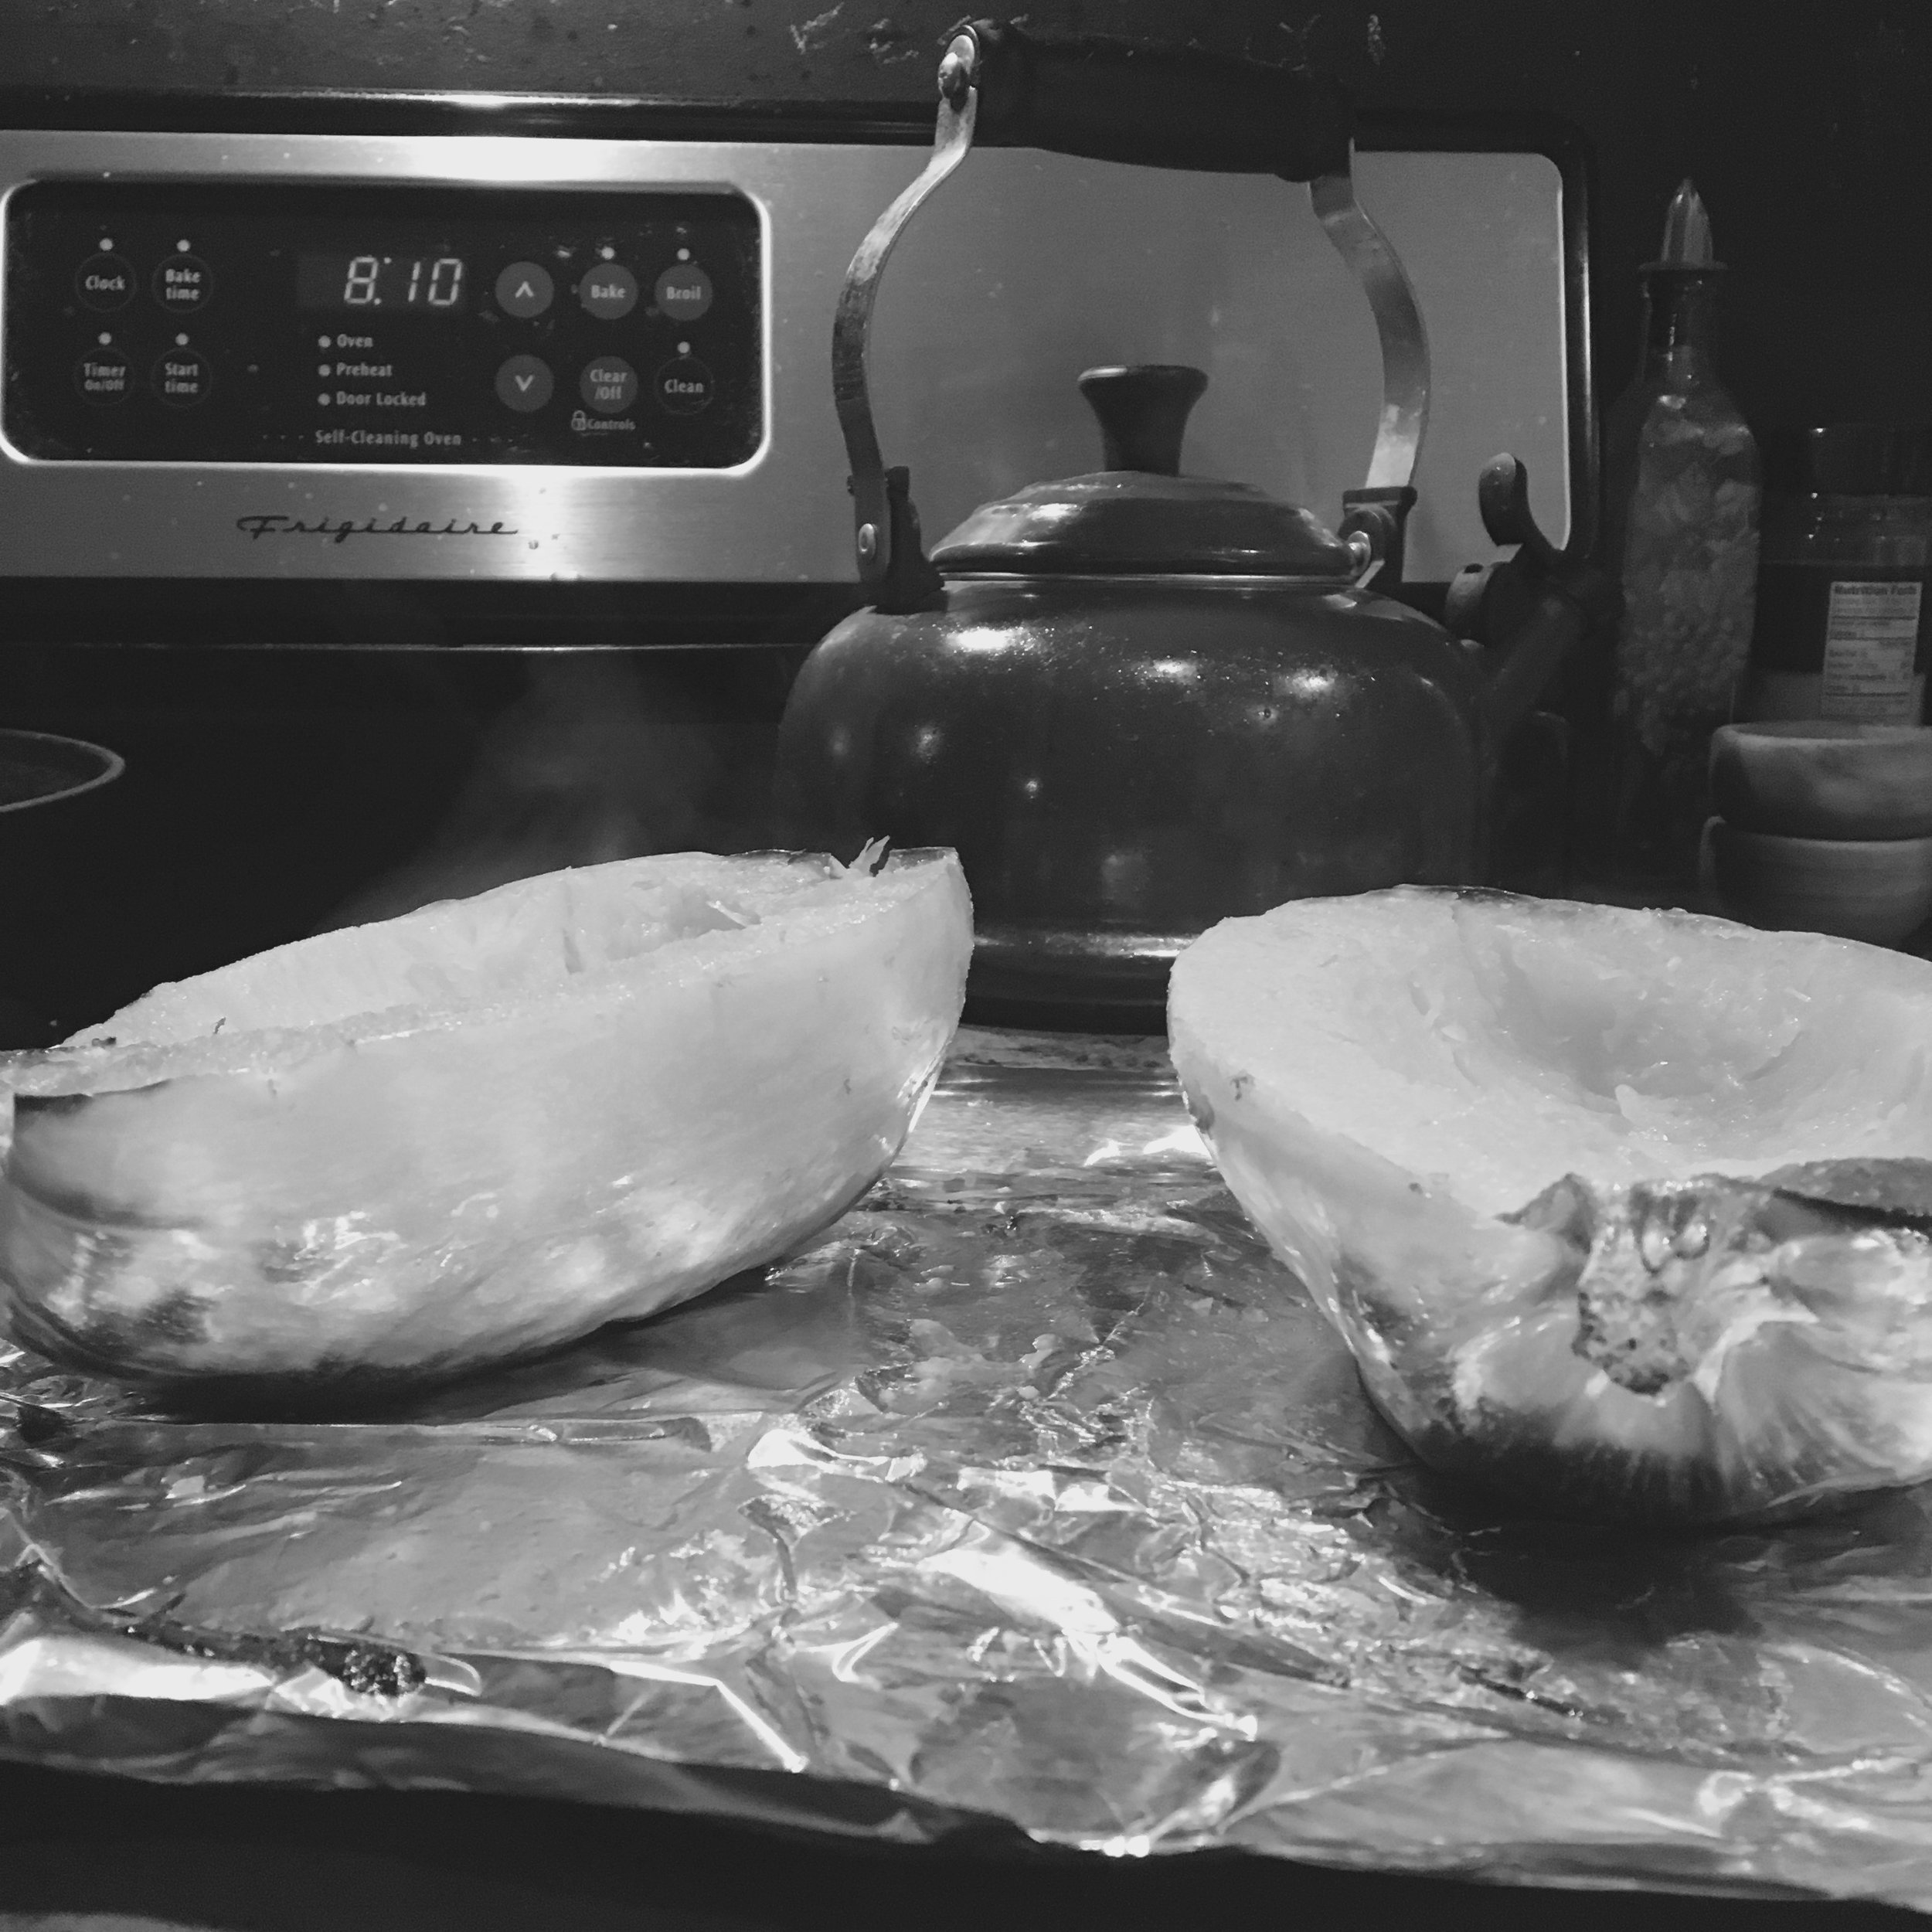 I used the black and white so you could see the steam pouring out of this vegetable cauldron ten minutes after it came out of the oven. Also, you can see how damned late we're having dinner.